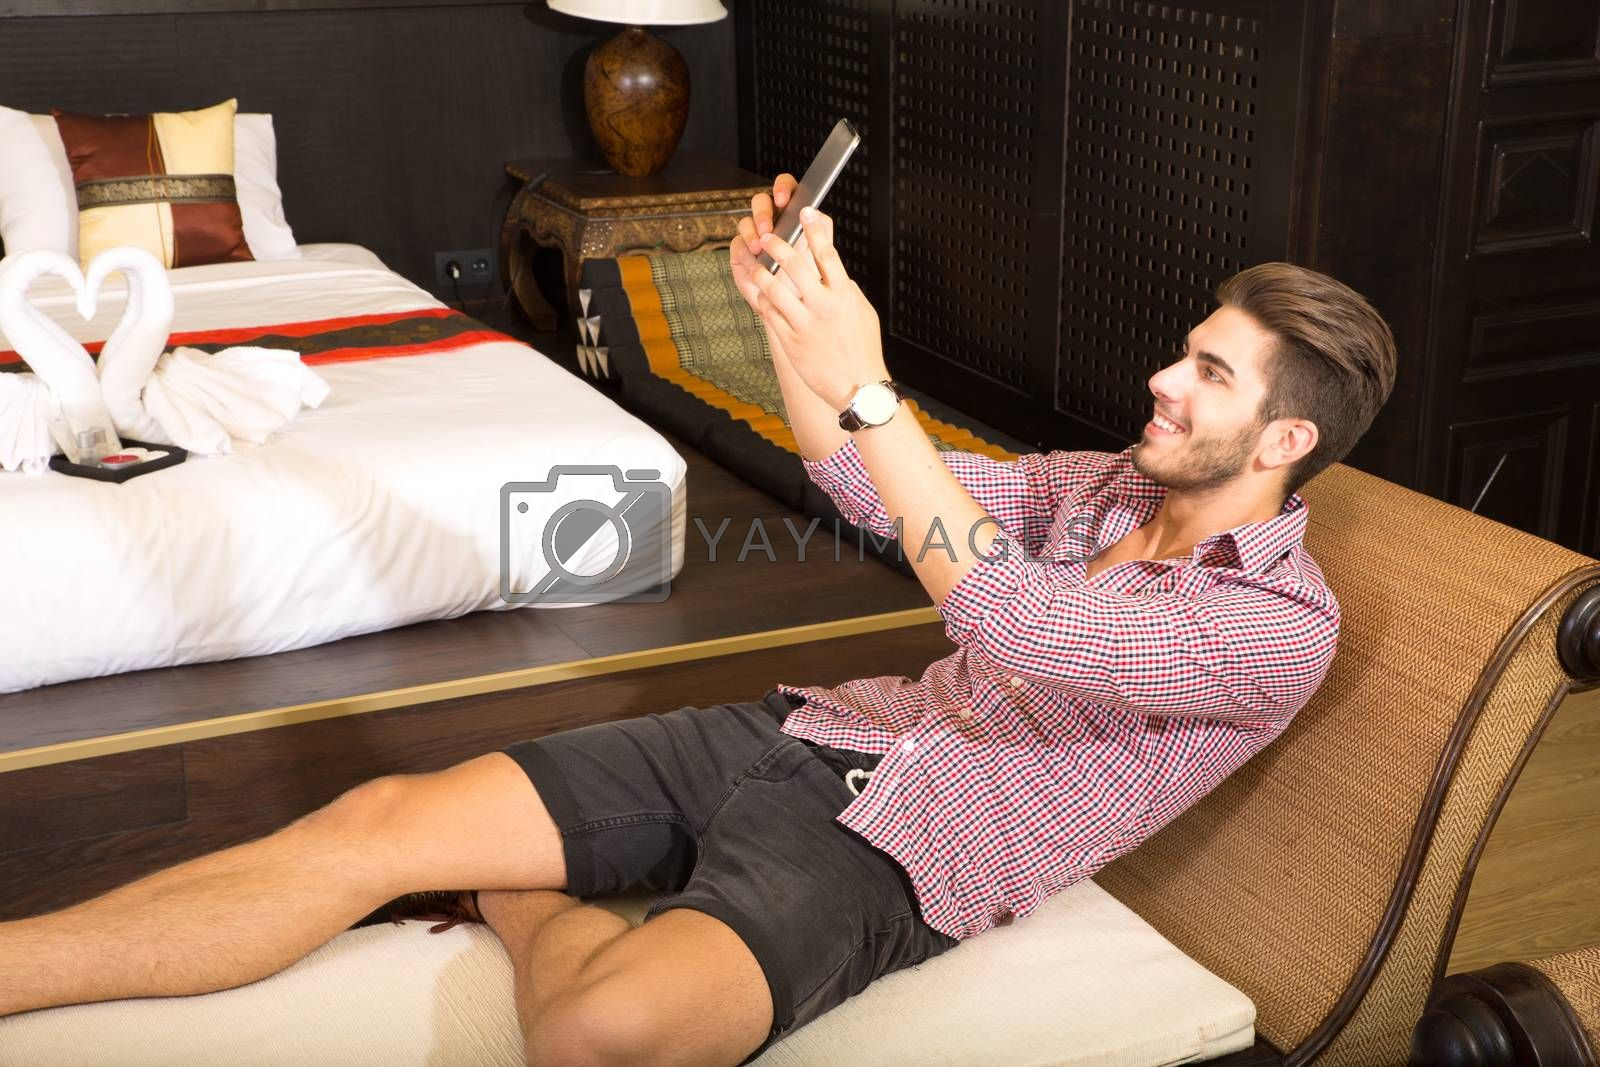 A handsome young man taking a selfie in a asian style hotel room.